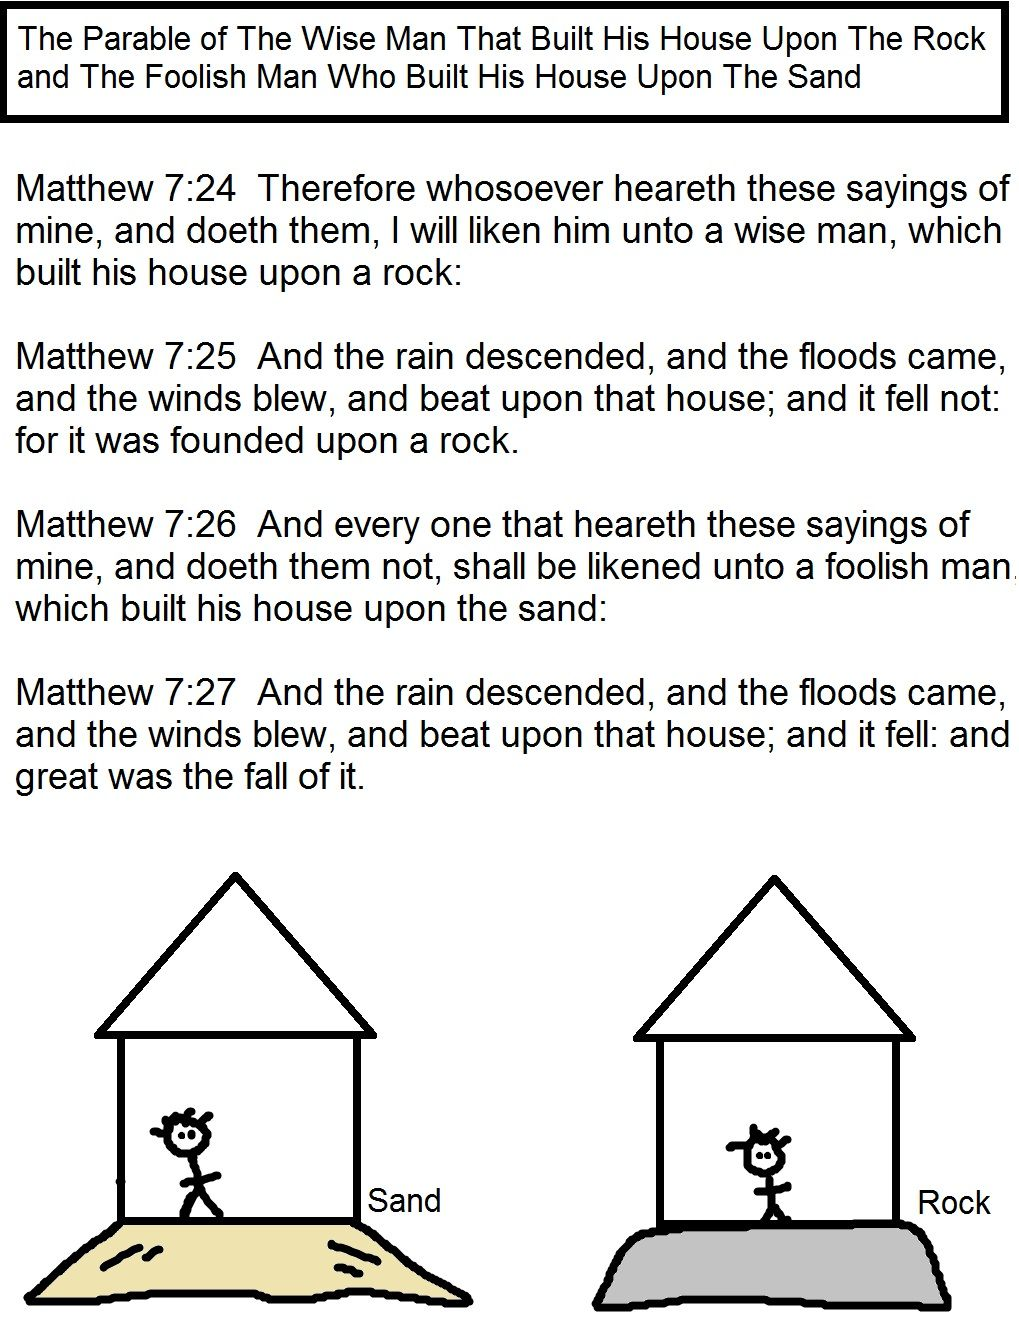 Wise man built his house upon the rock sermon - Parable Wise Man Builds His House Upon The Rock